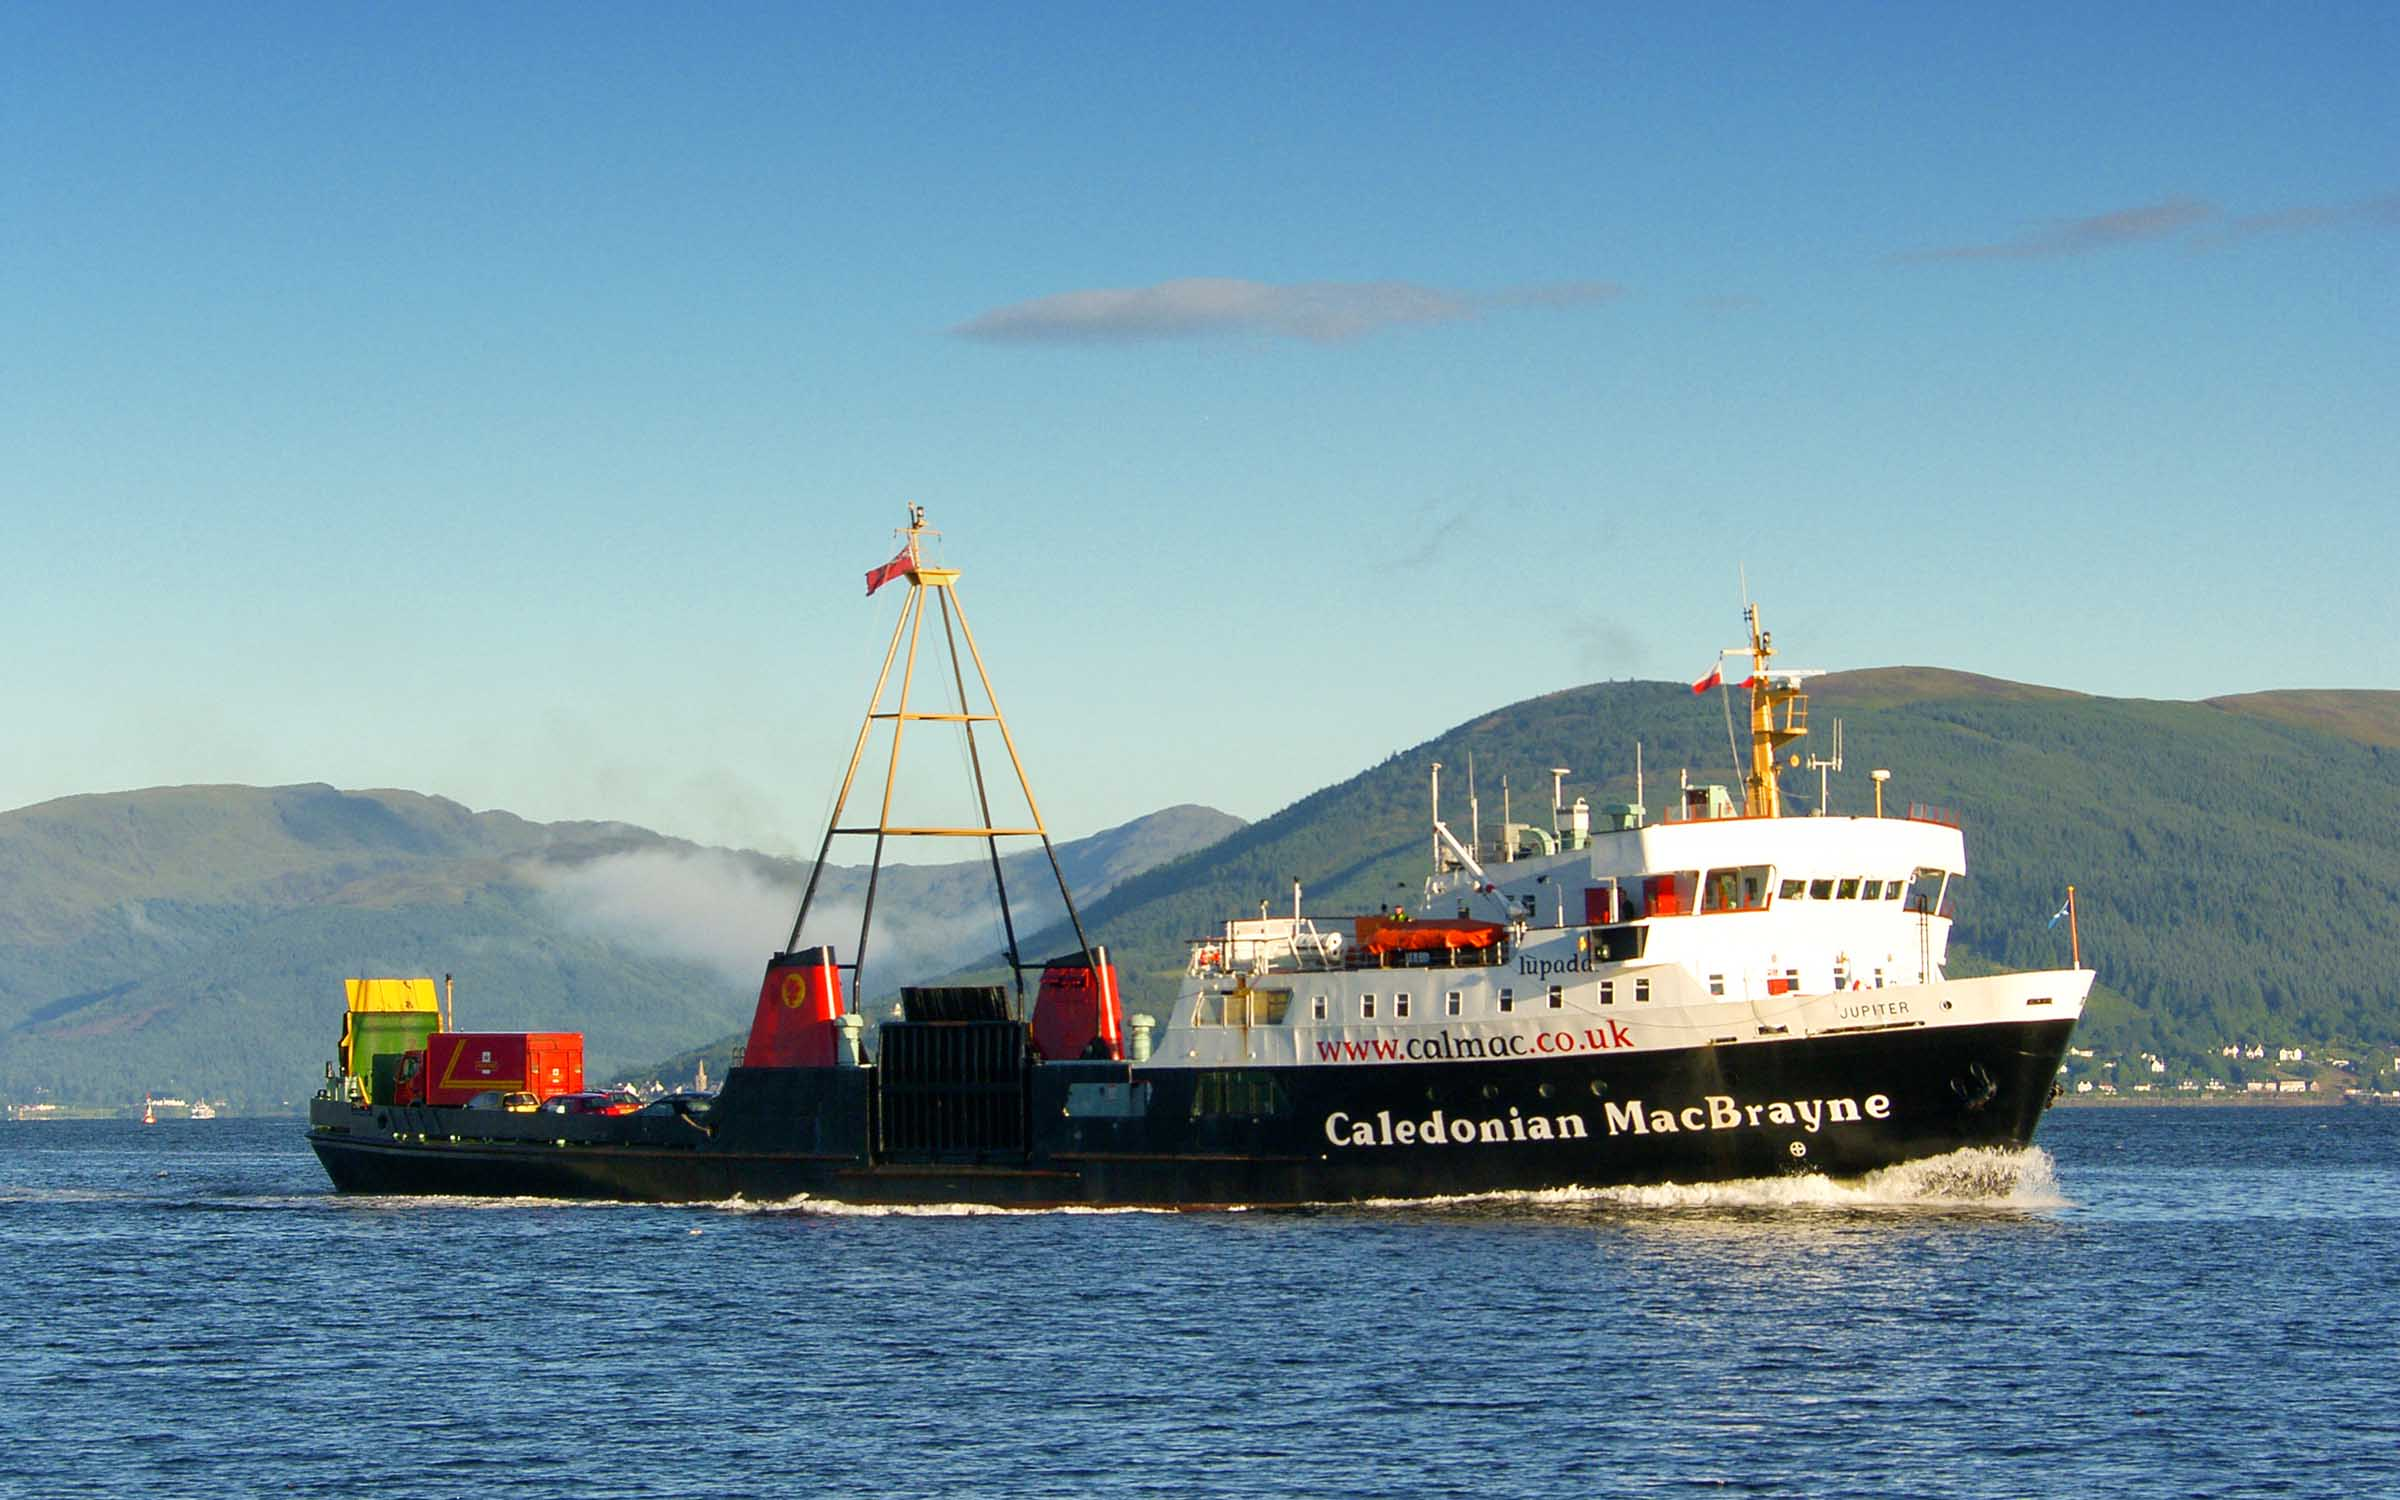 Jupiter approaching Gourock (Ships of CalMac)